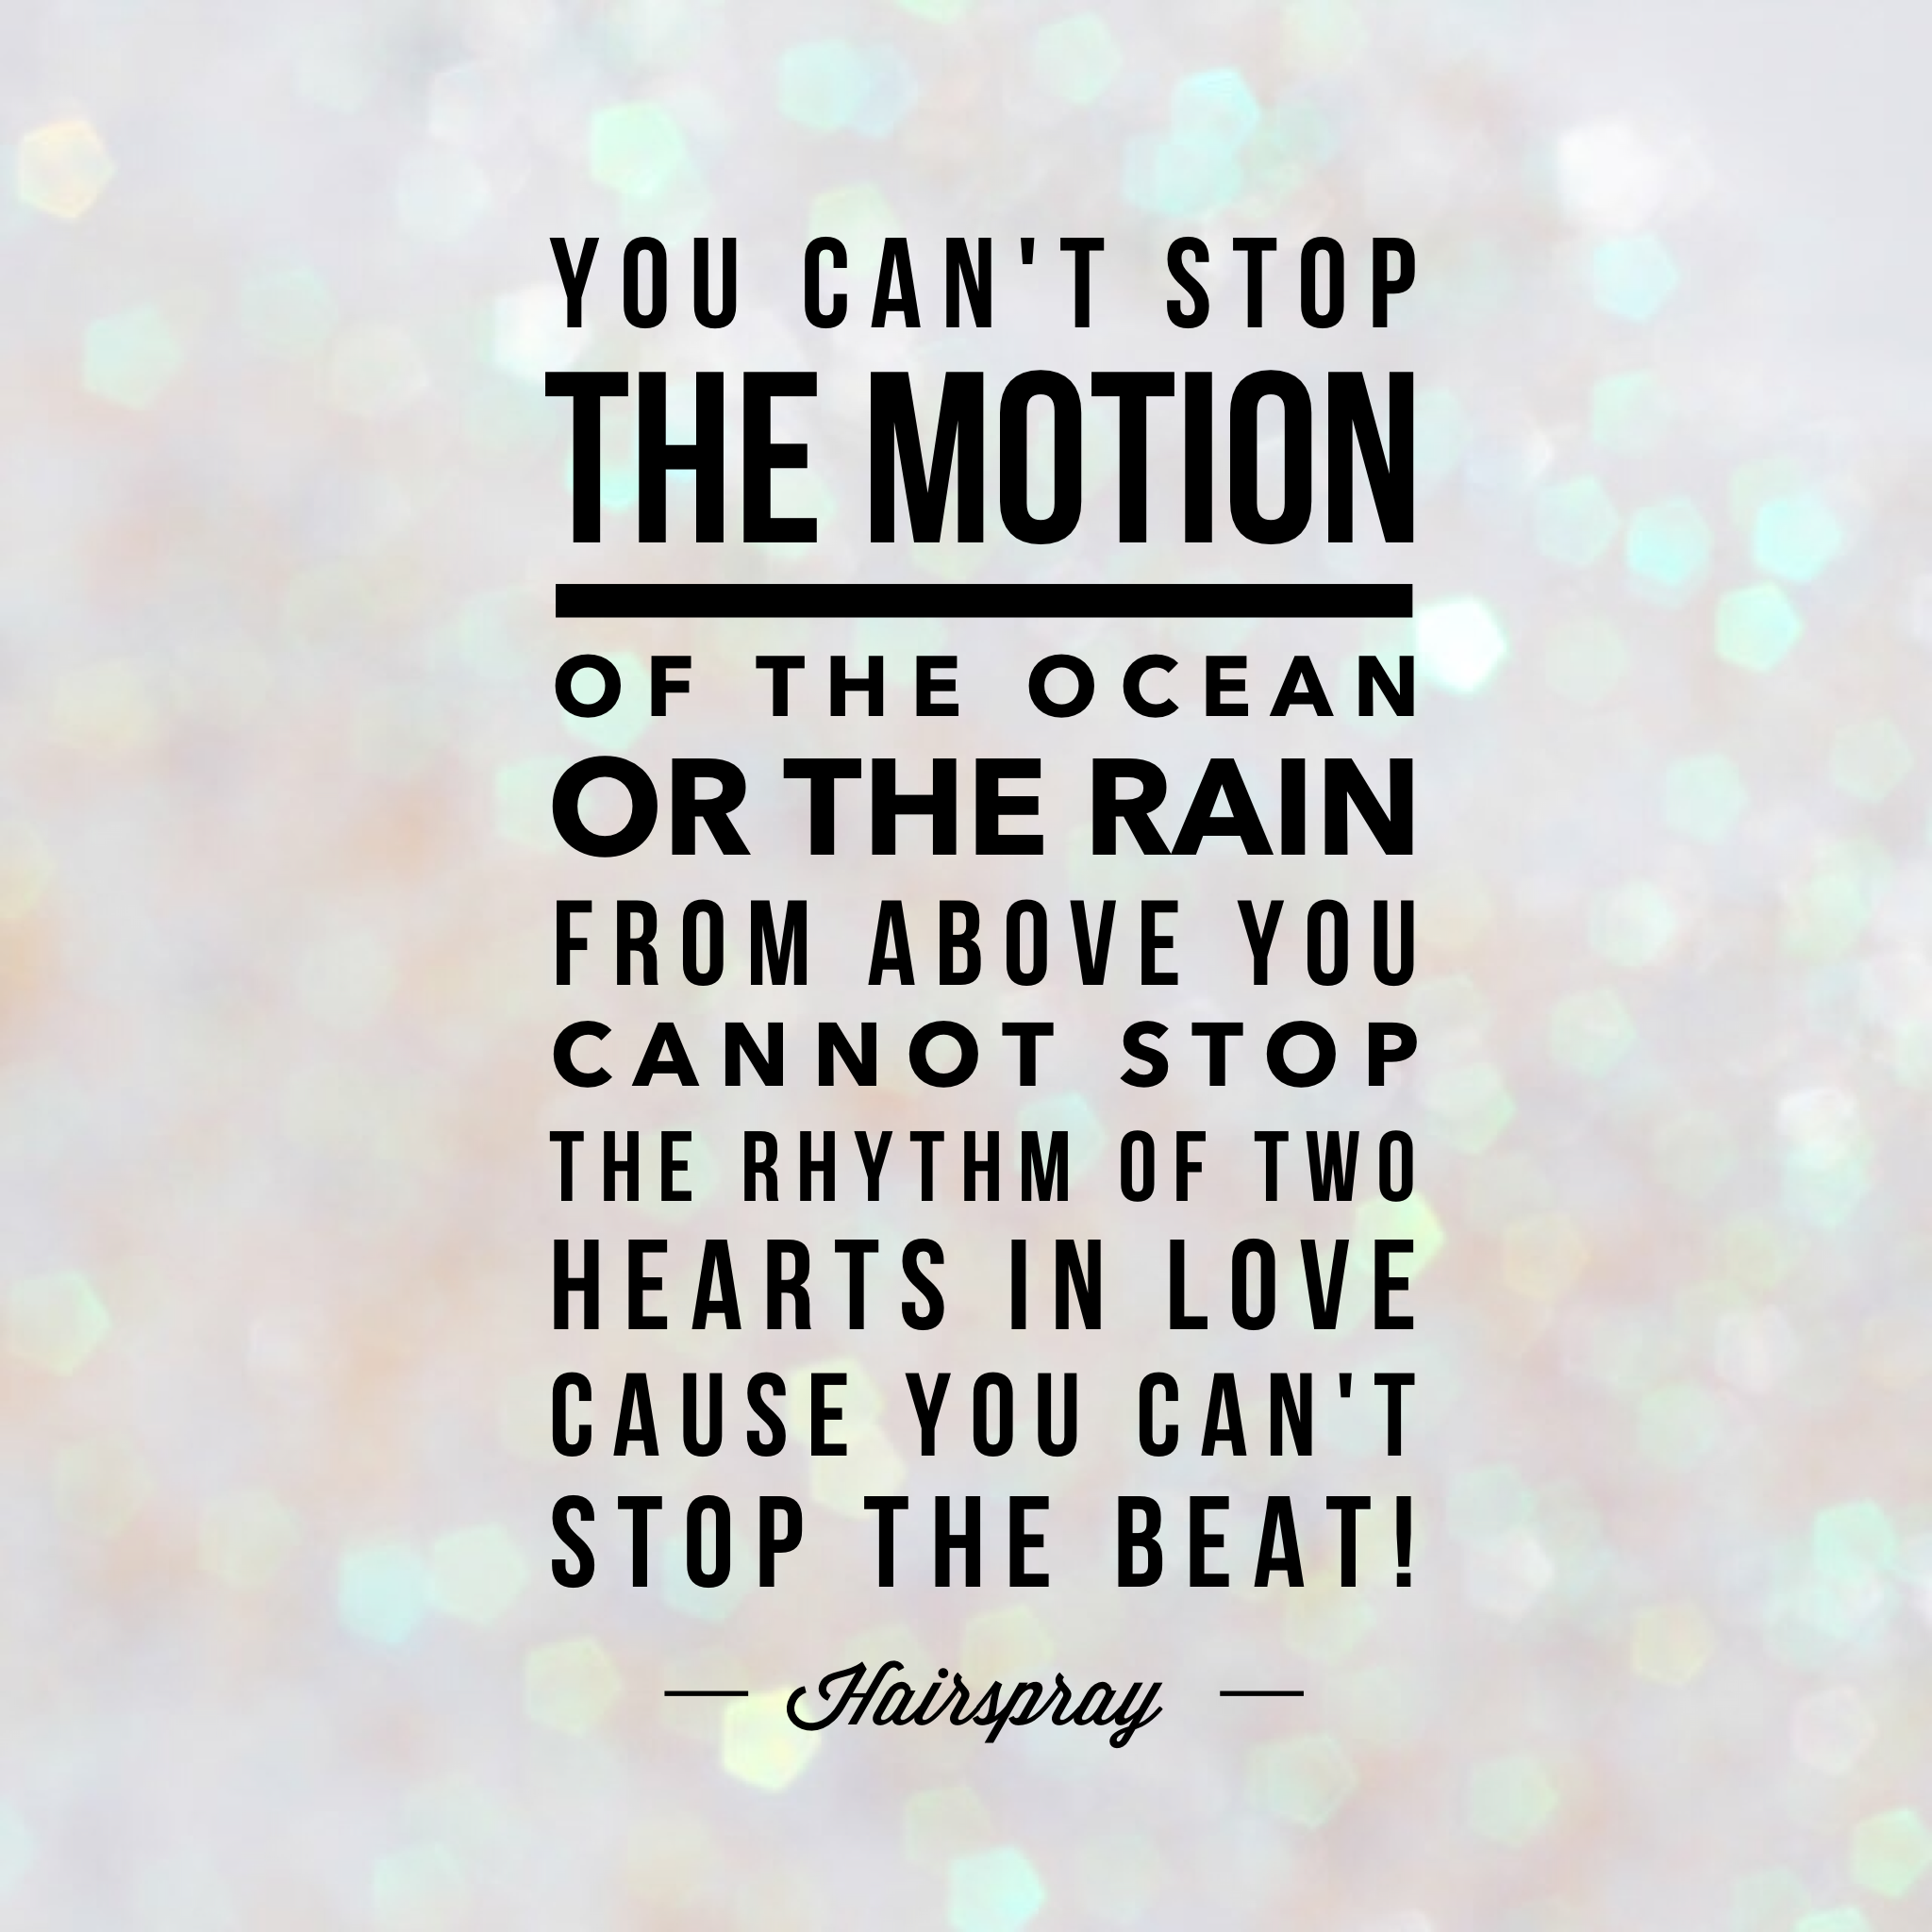 You can't stop the motion of the ocean or the rain from above. - Hairspray quote